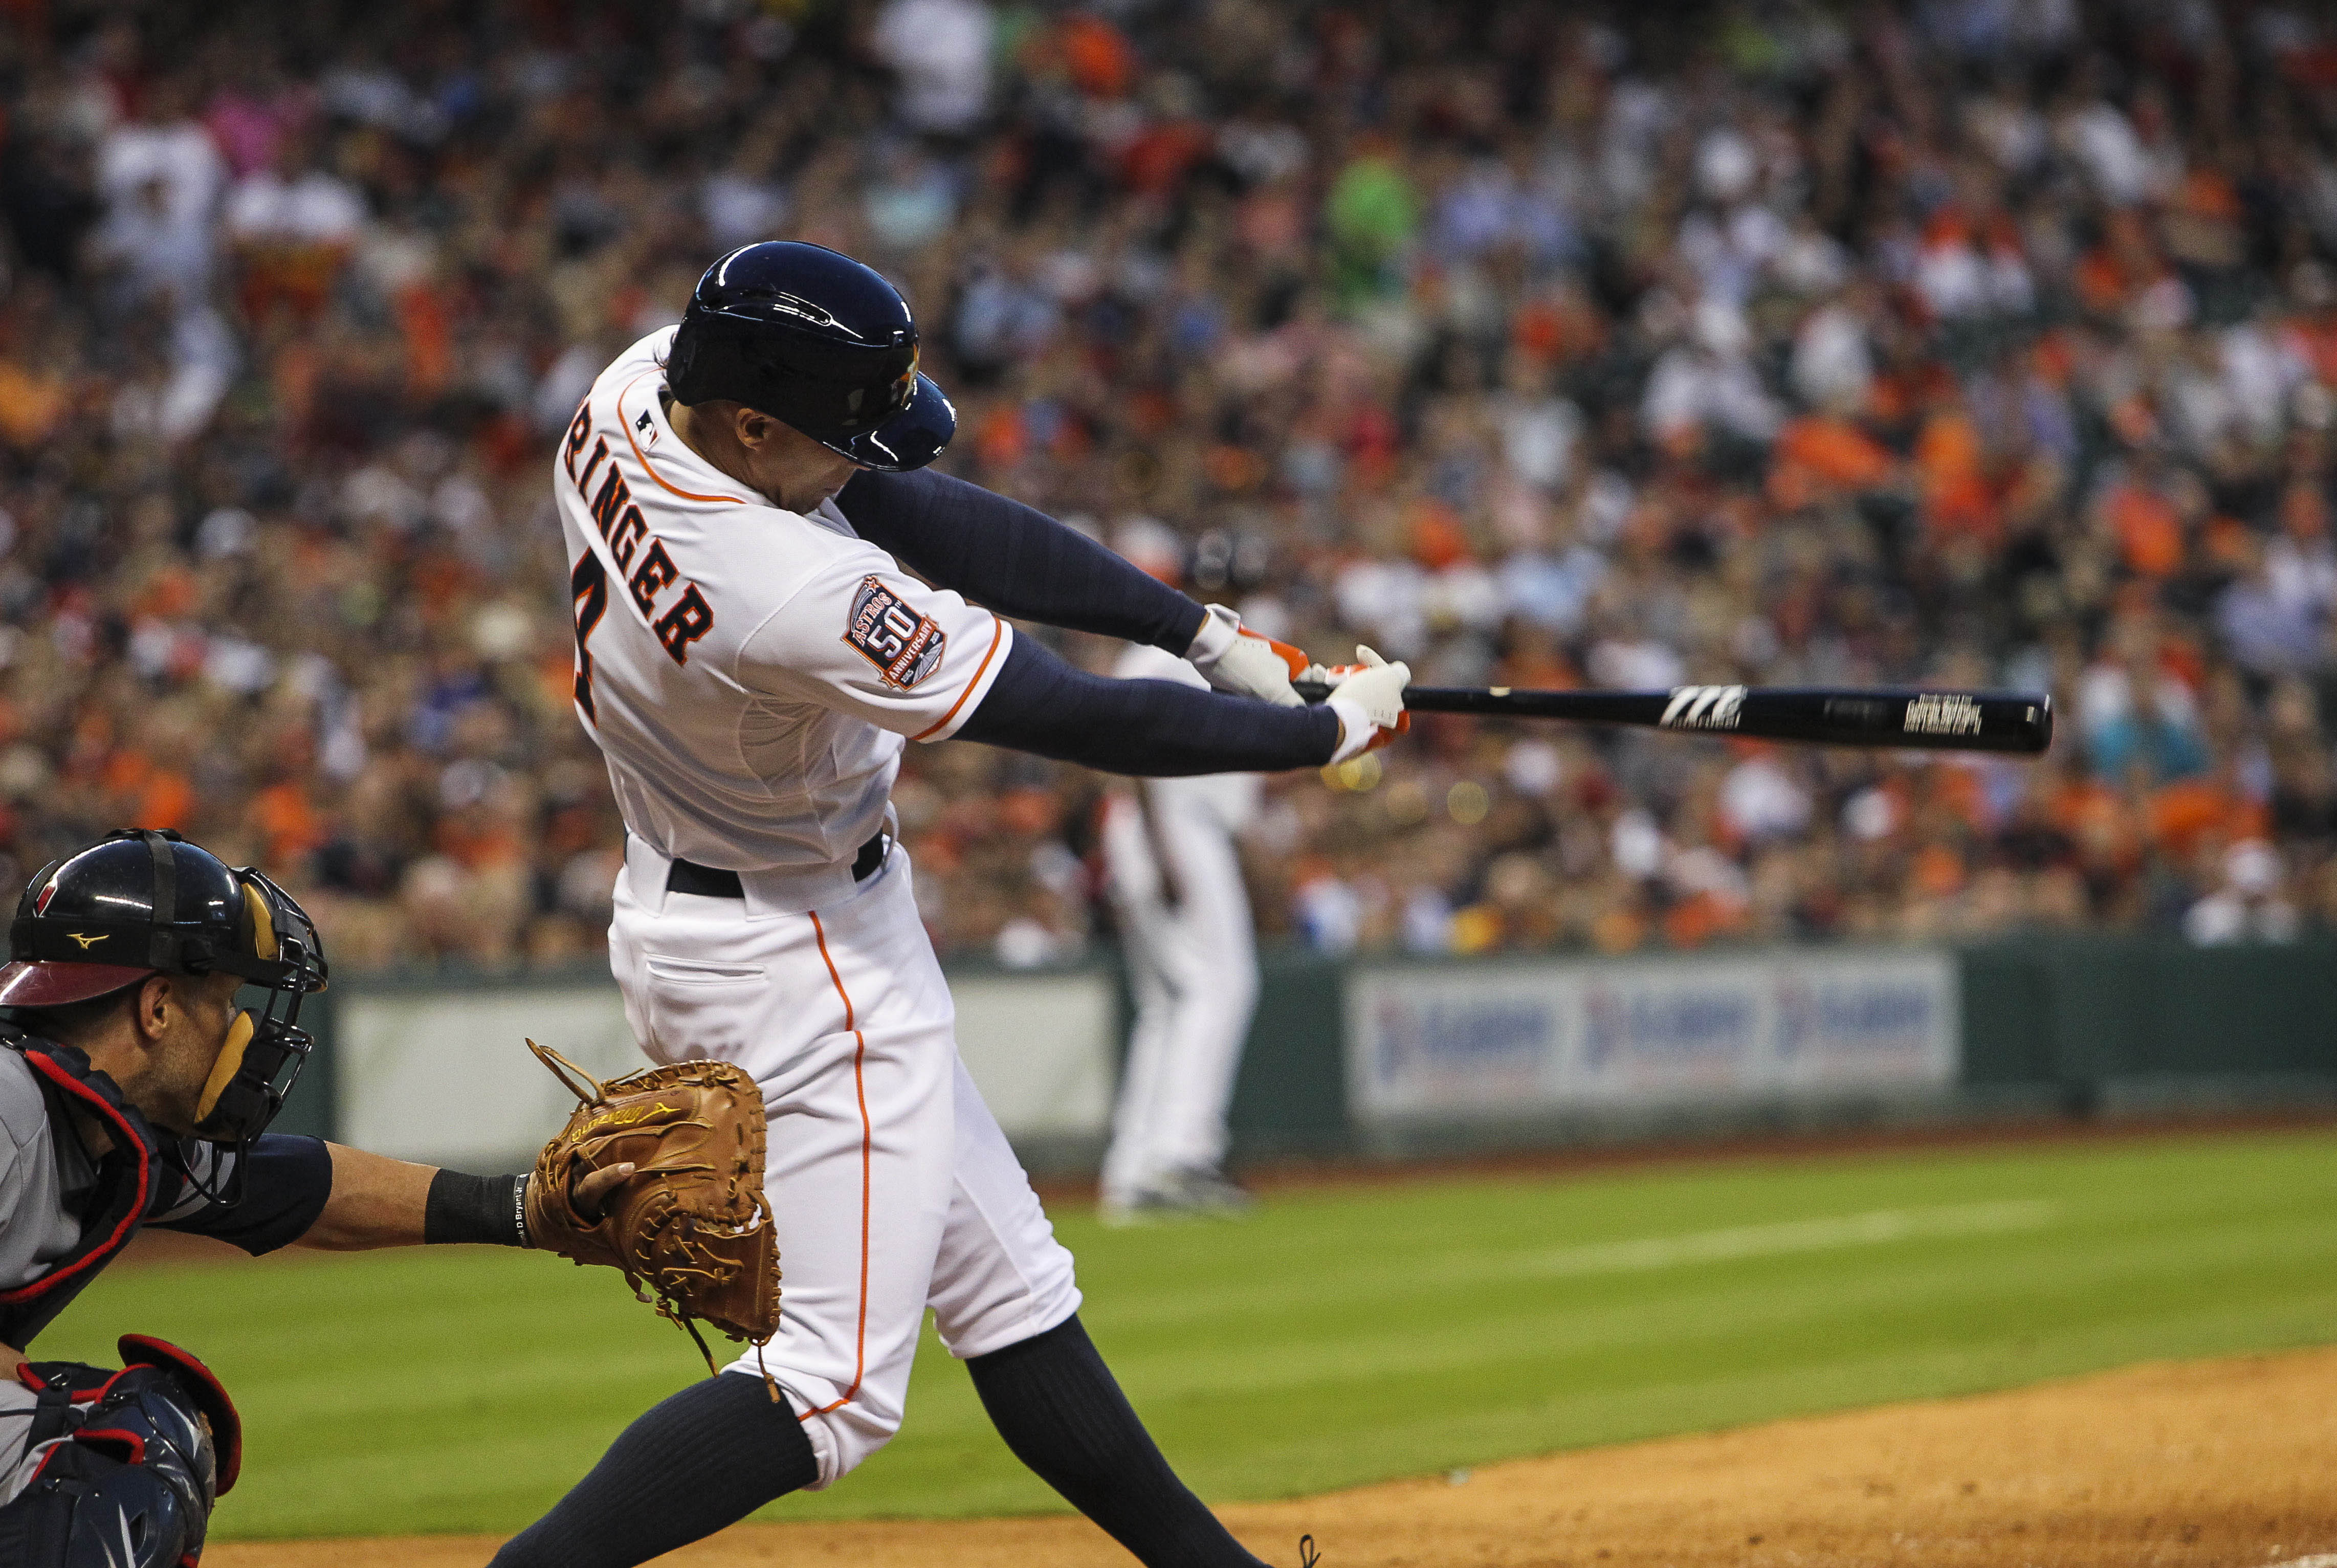 The swing that brought in a run against Kluber.